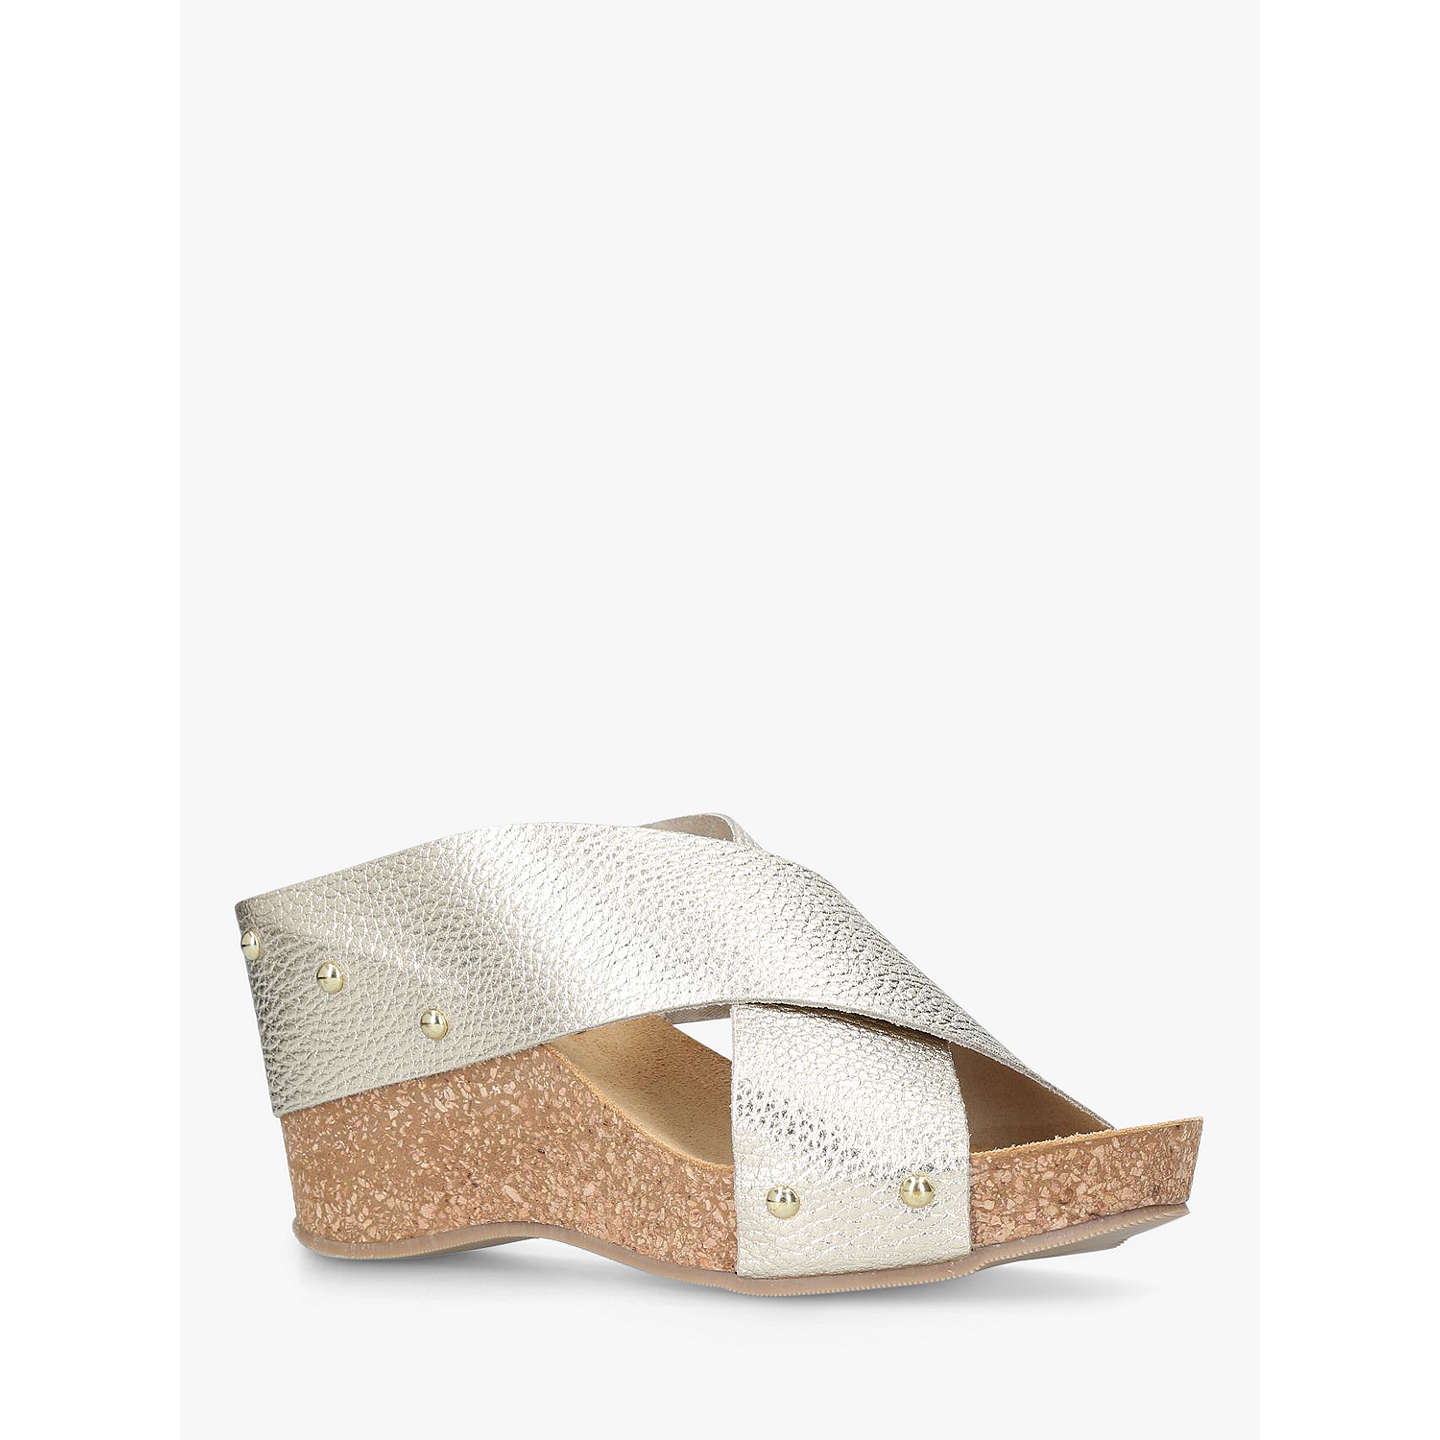 BuyCarvela Comfort Sooty Cross Strap Wedge Heel Sandals, Gold Leather, 3 Online at johnlewis.com